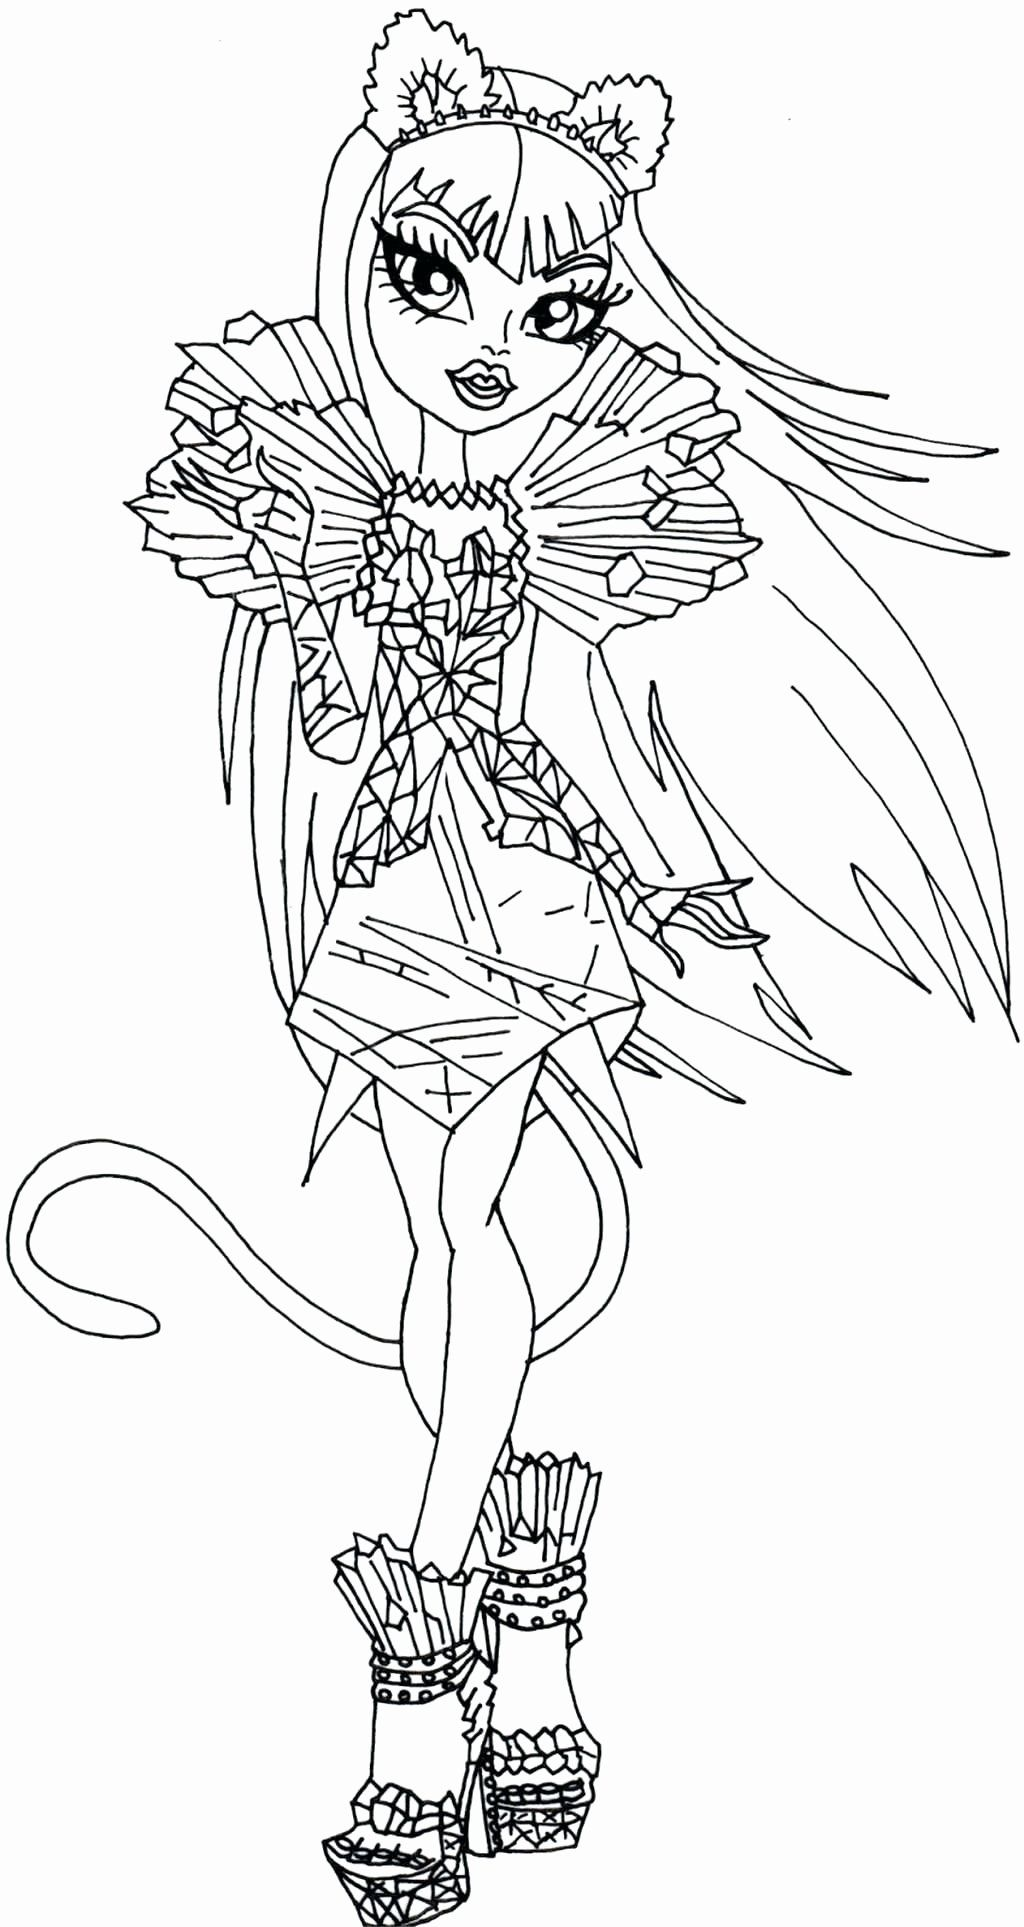 Monster High Coloring Book Awesome Coloring Pages Coloring Pages Monster High Catty For Boys In 2020 Monster Coloring Pages Coloring Pages Coloring Books